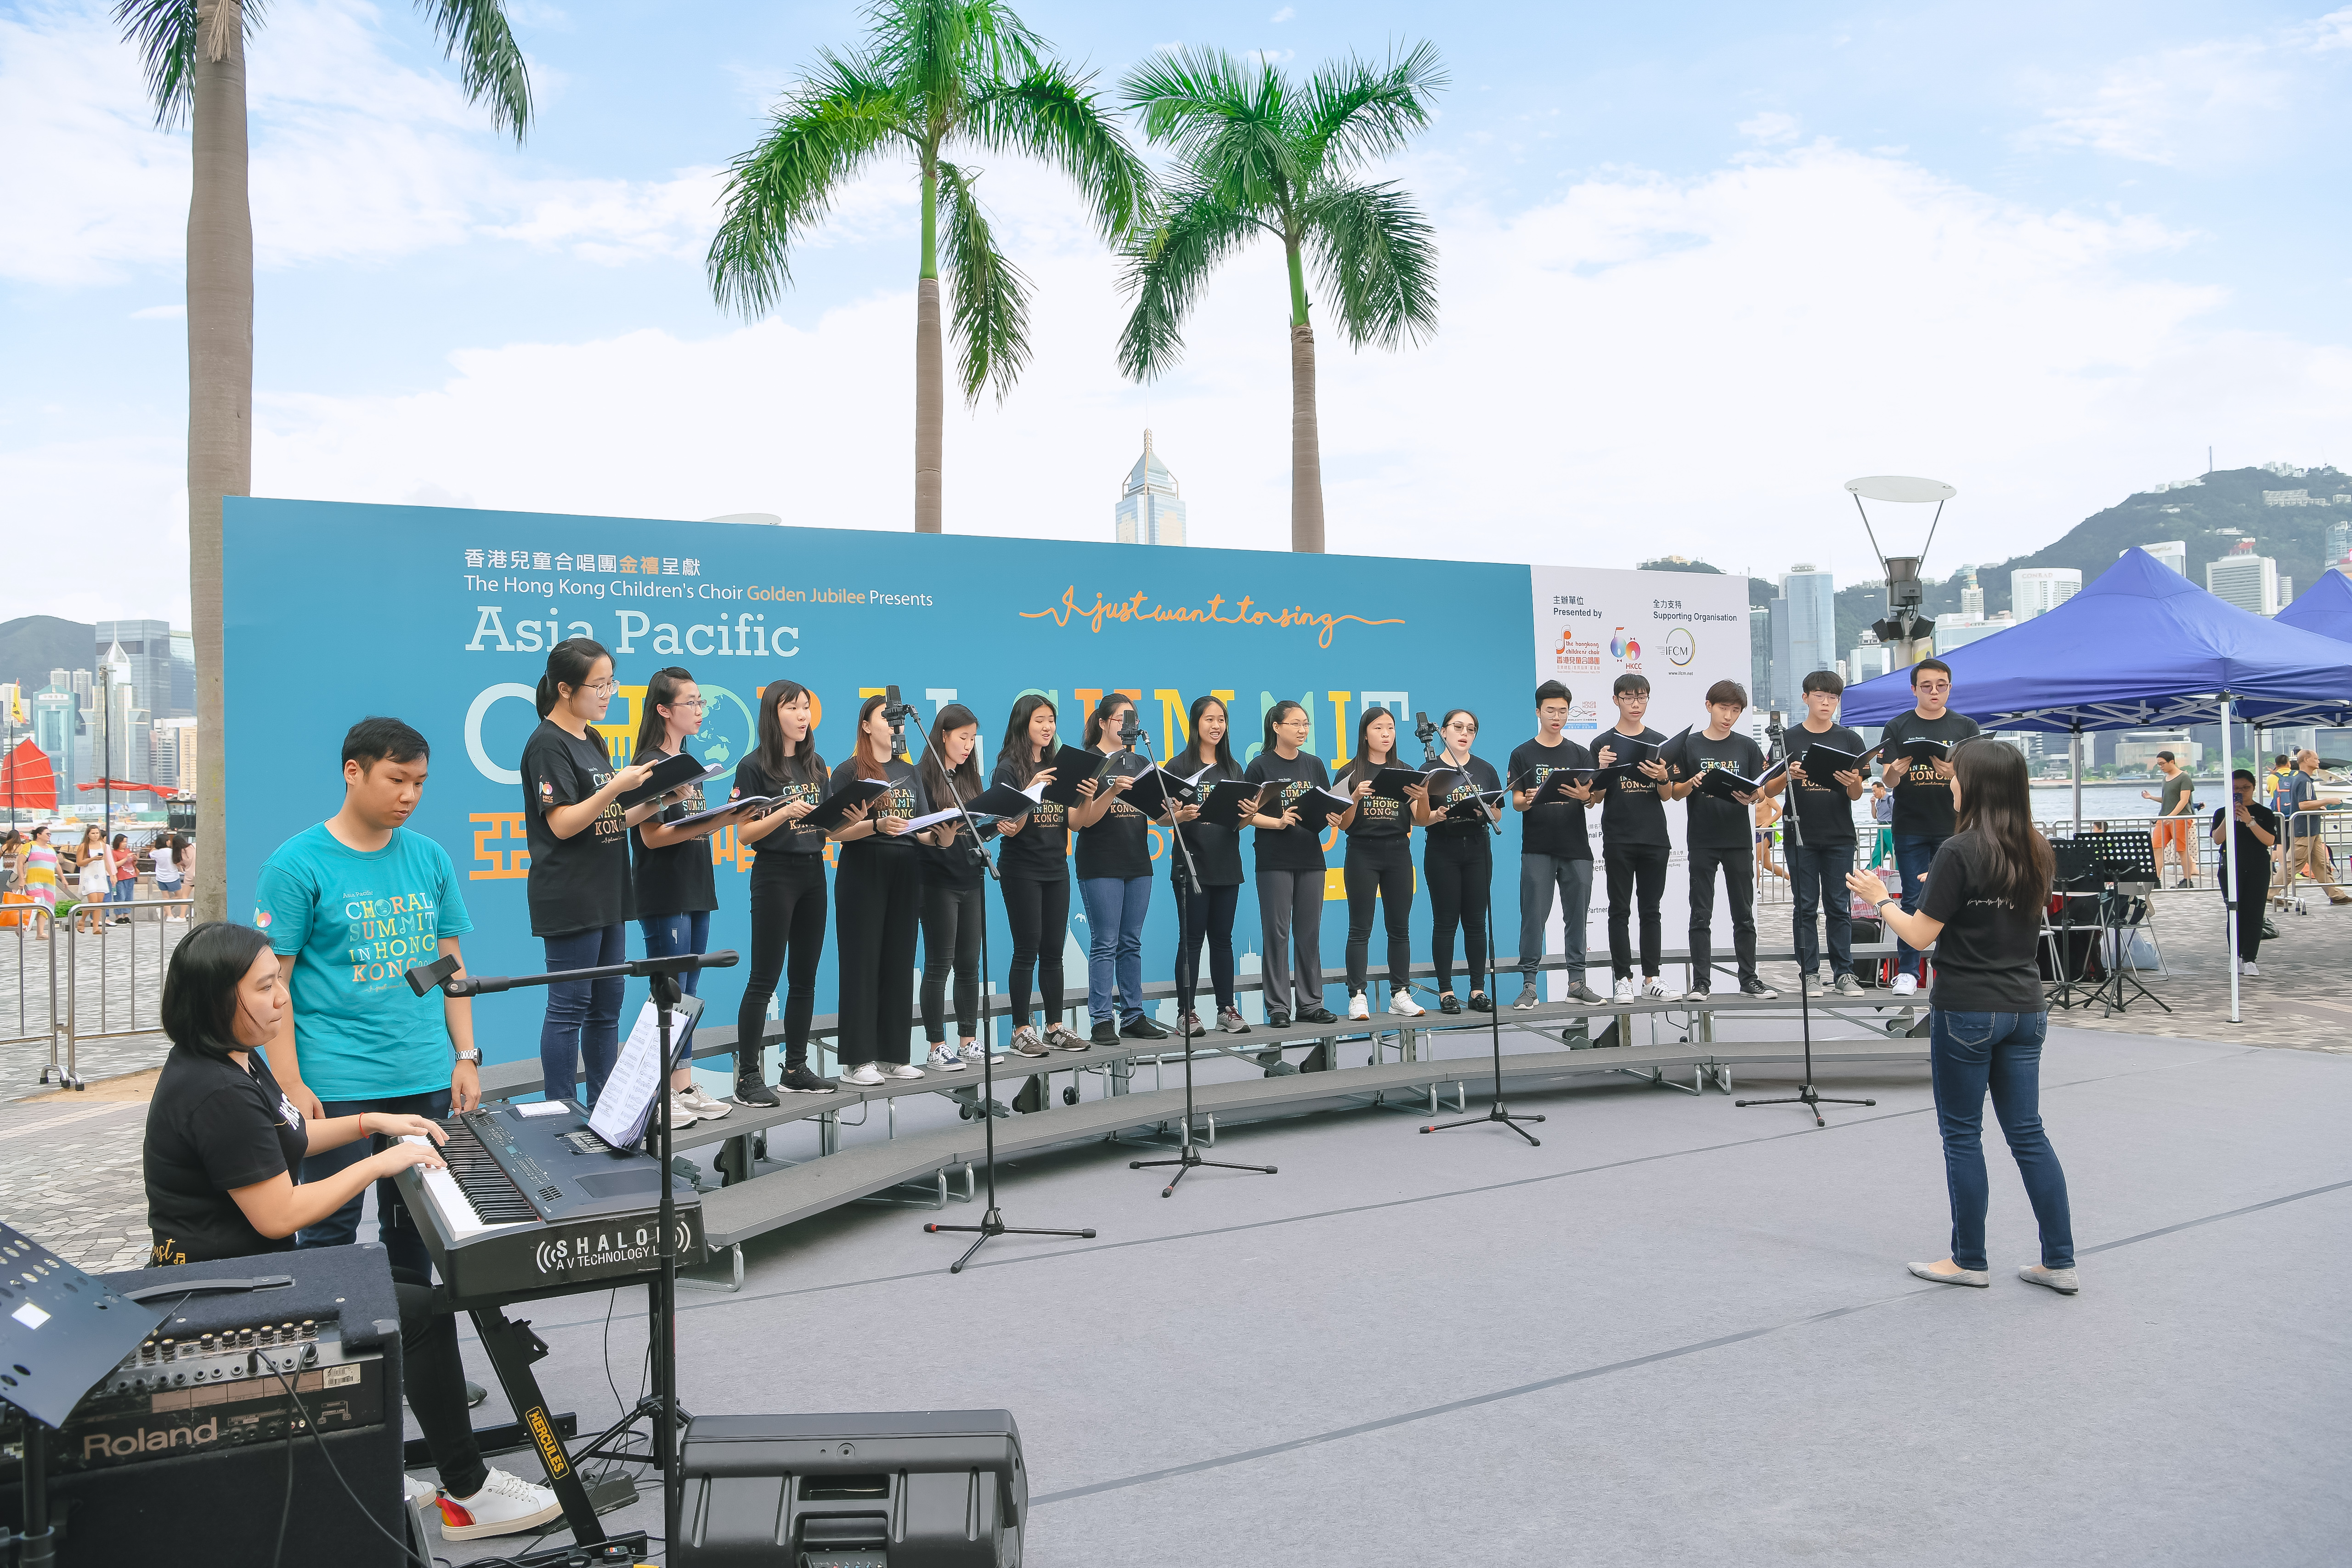 https://www.hkcchoir.org/sites/default/files/chamber_youth_2019_choral_summit.jpg